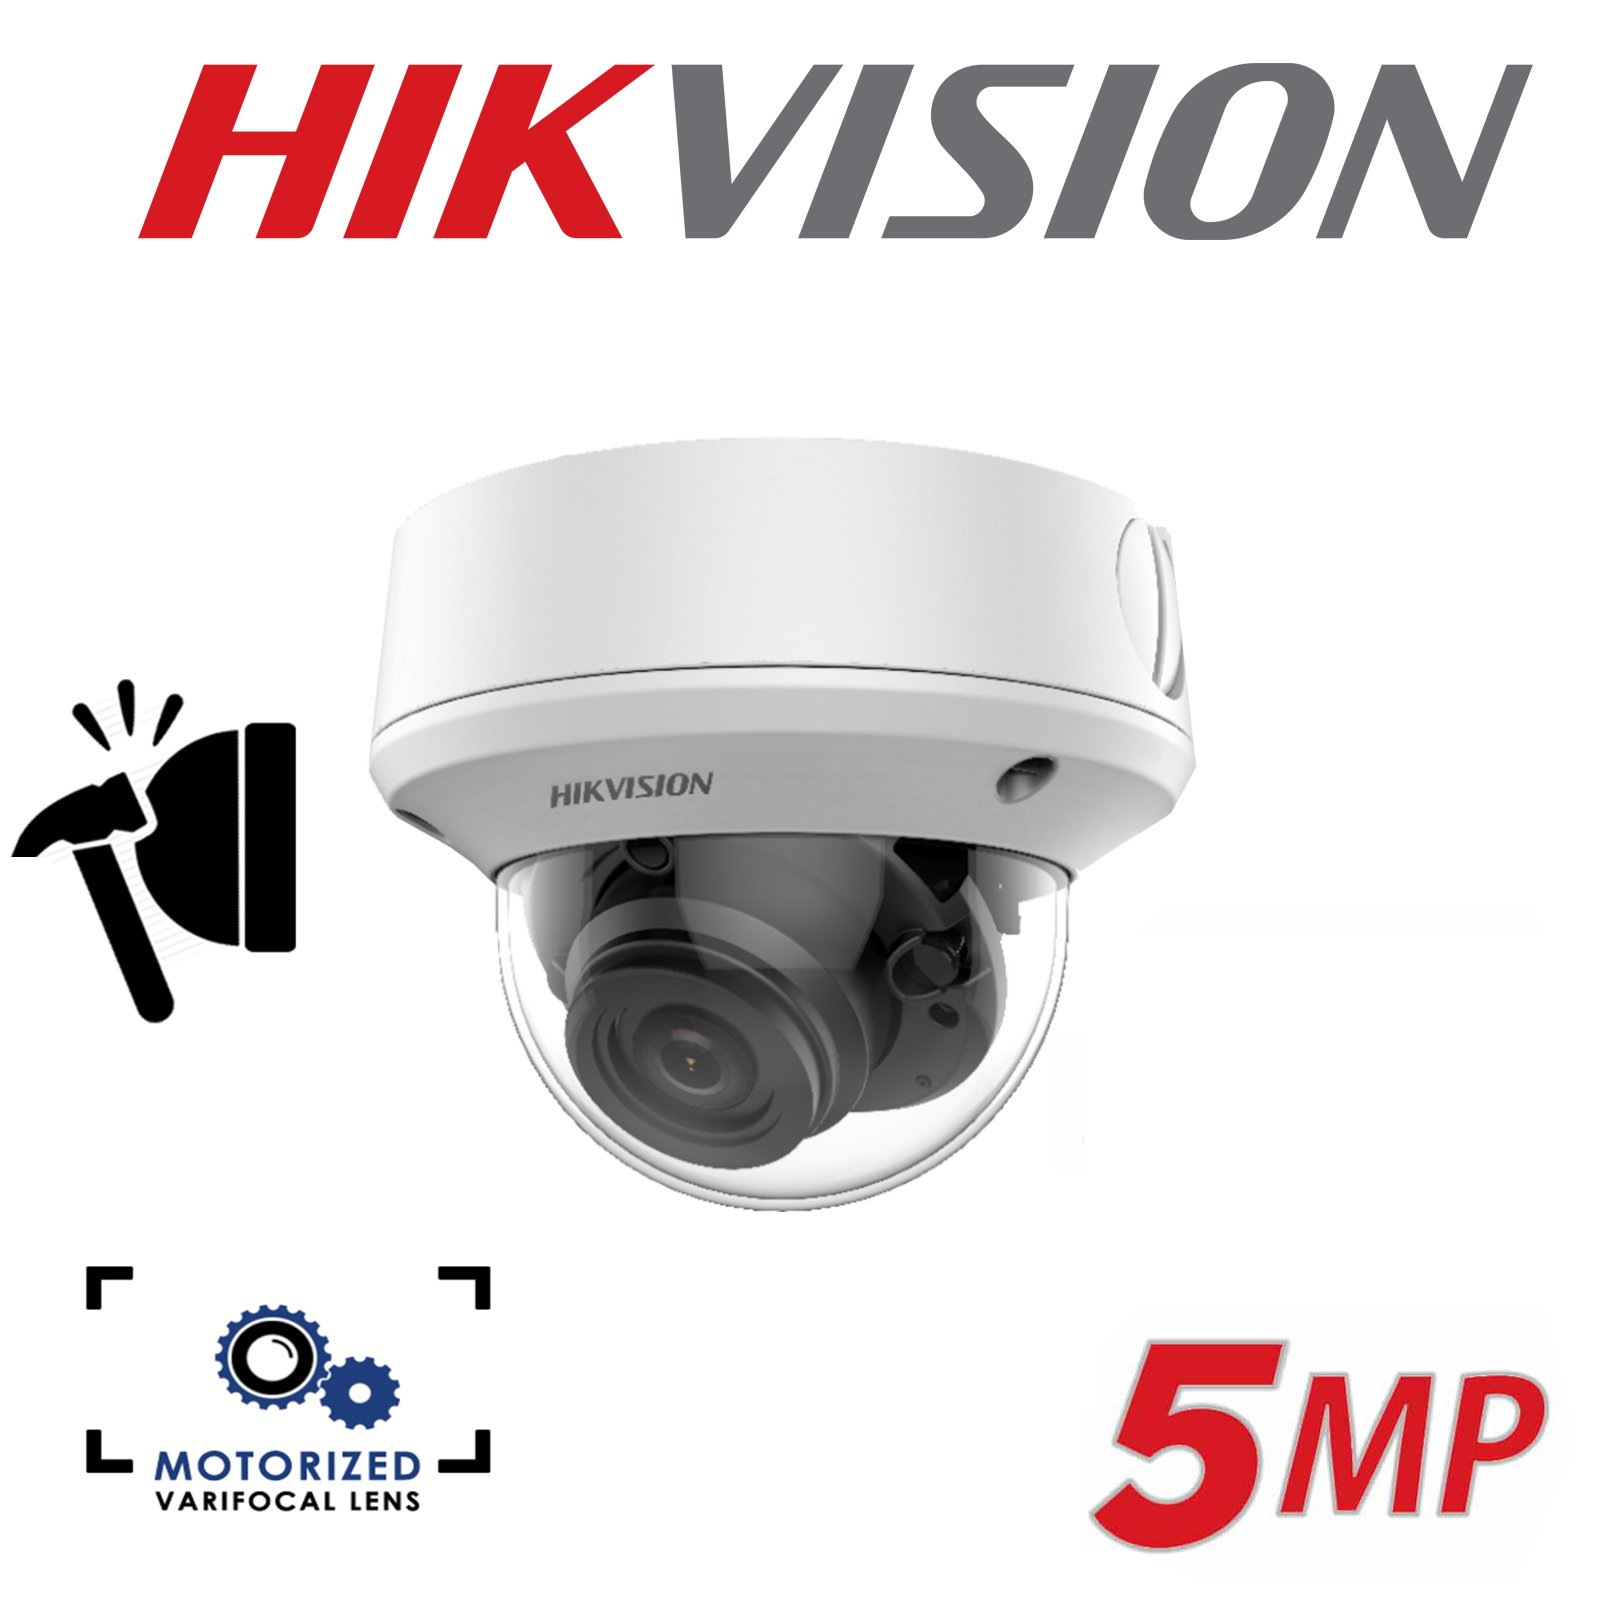 5MP HIKVISION ULTRA LOW LIGHT INDOOR MOTORISED VARIFOCAL 2.7-13.5MM DOME CAMERA DS-2CE56H8T-ITZF